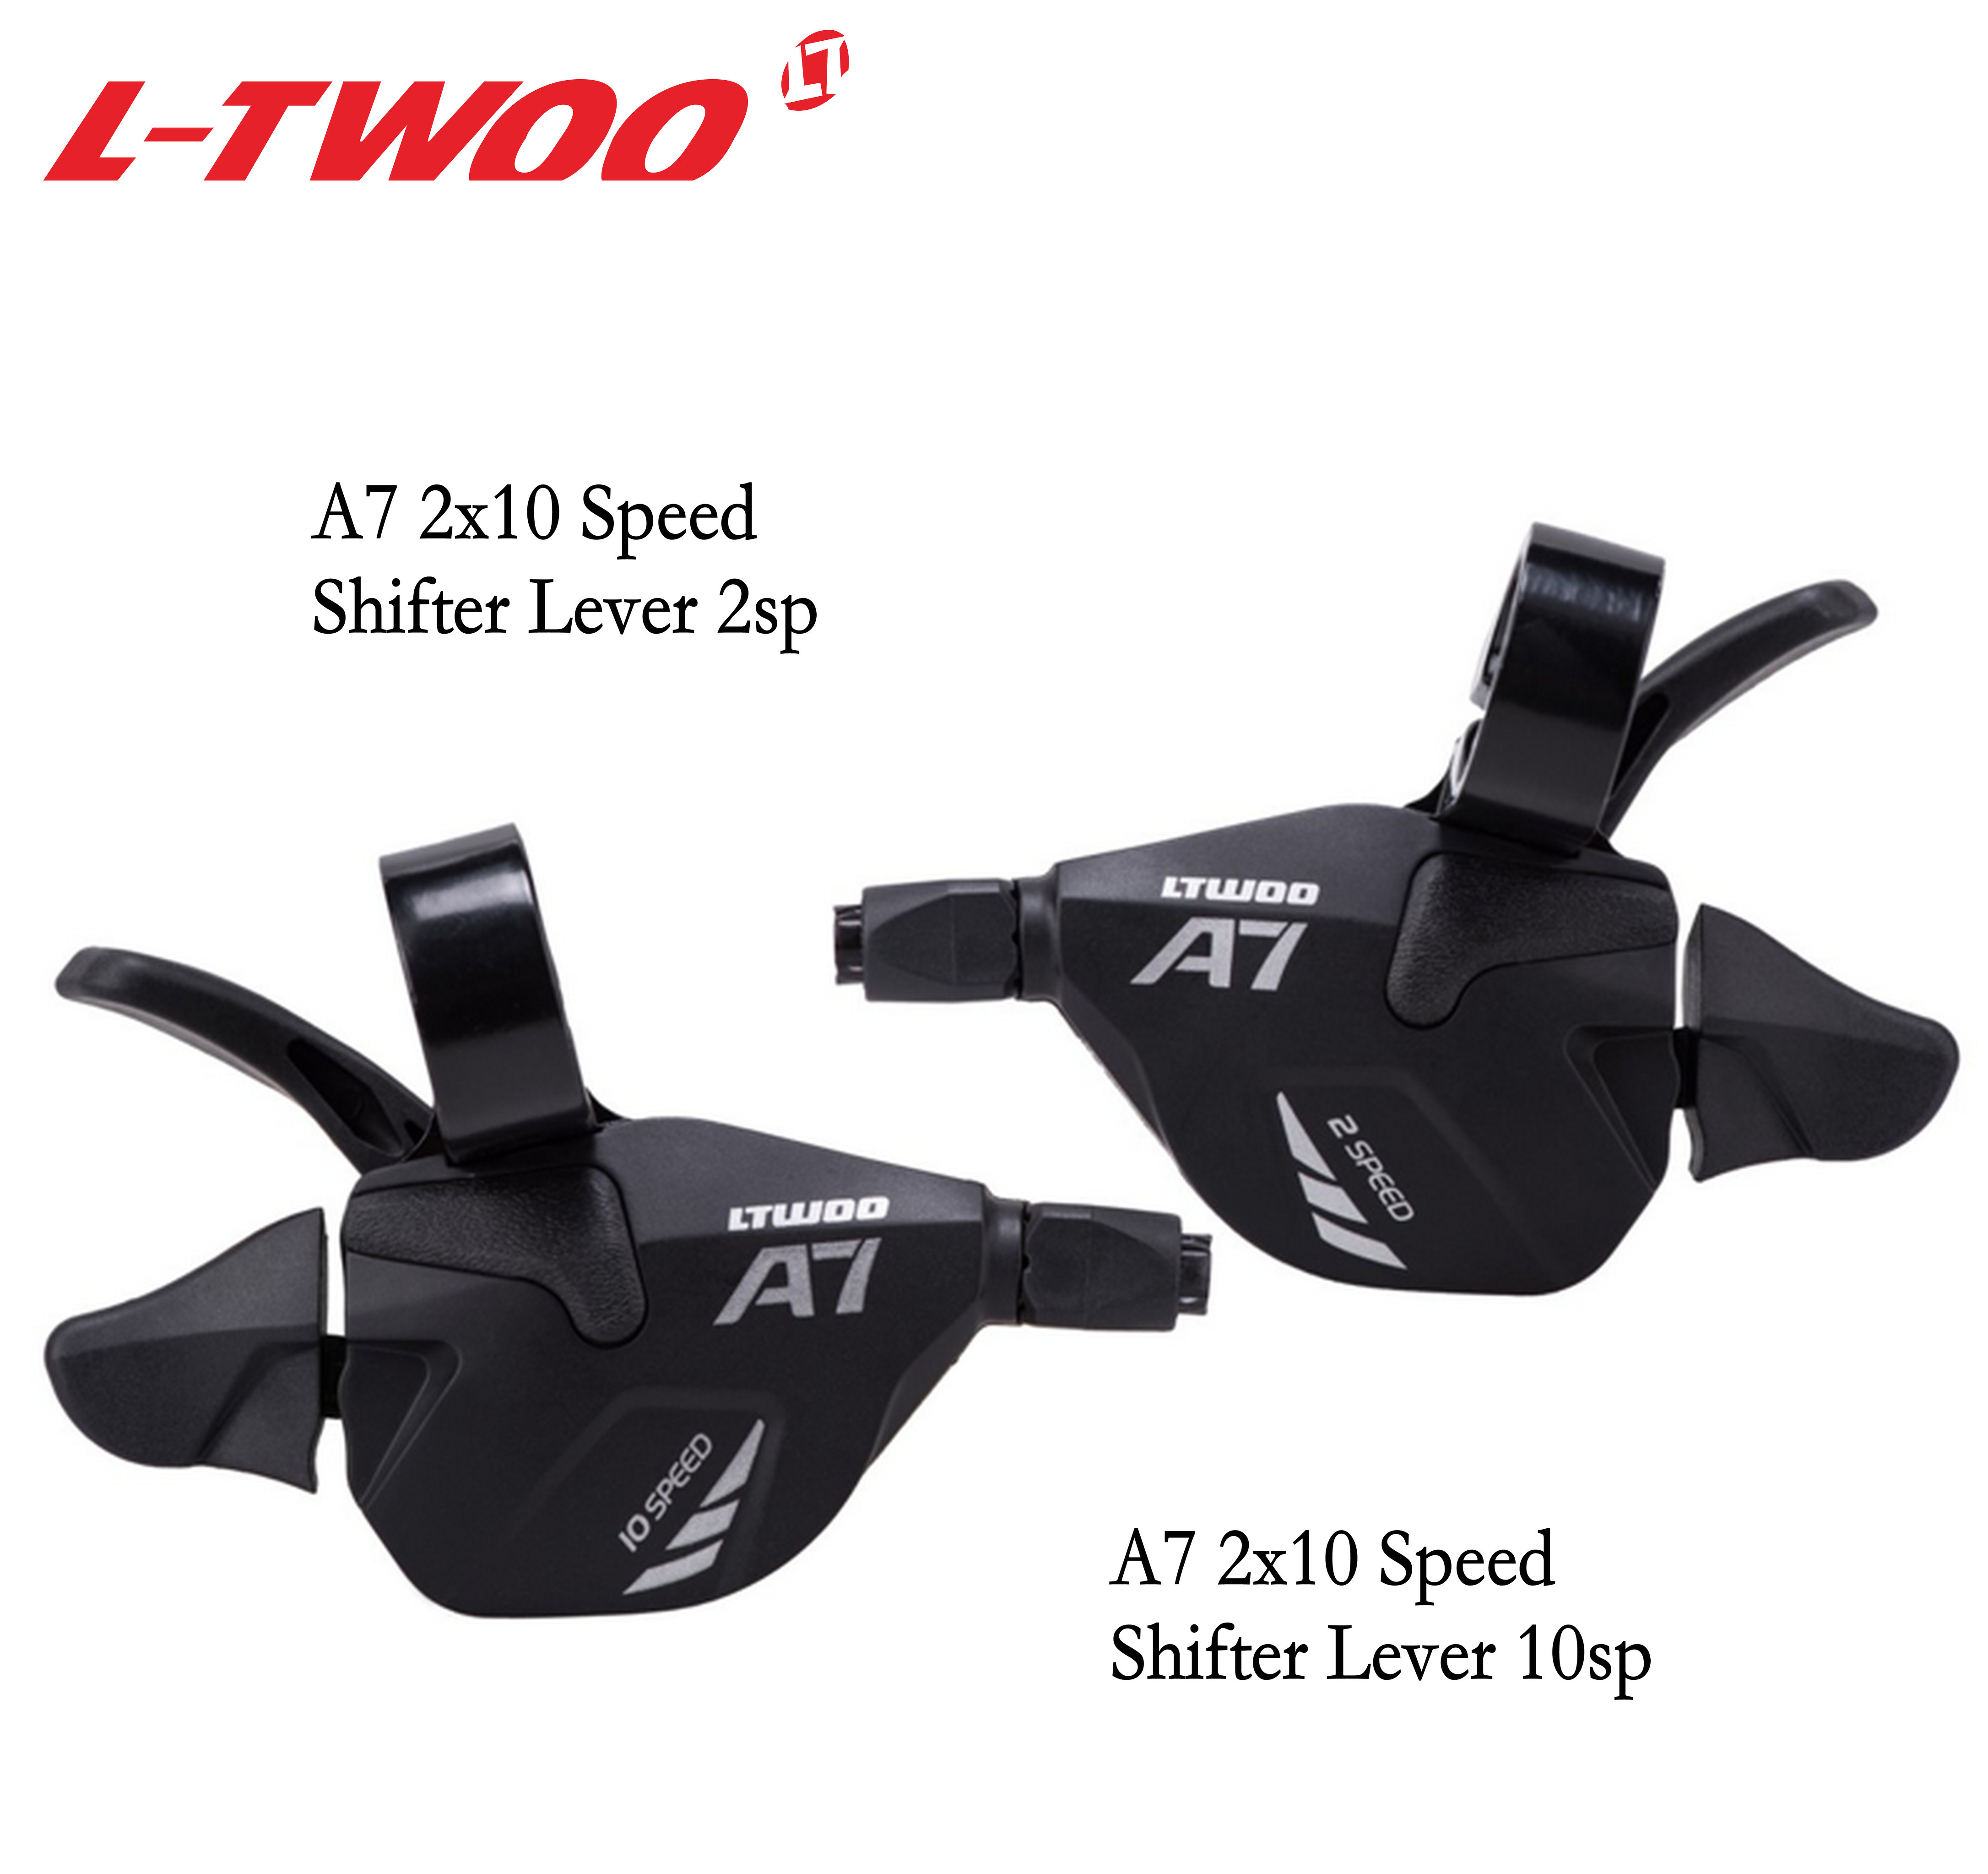 LTWOO A7 LTWOO Groupset <font><b>2X10</b></font> 3X10 Speed 30S 20S Trigger Shifter Lever for MTB Mountain bike Cassette 1146T/50T, X9X7 spare parts image